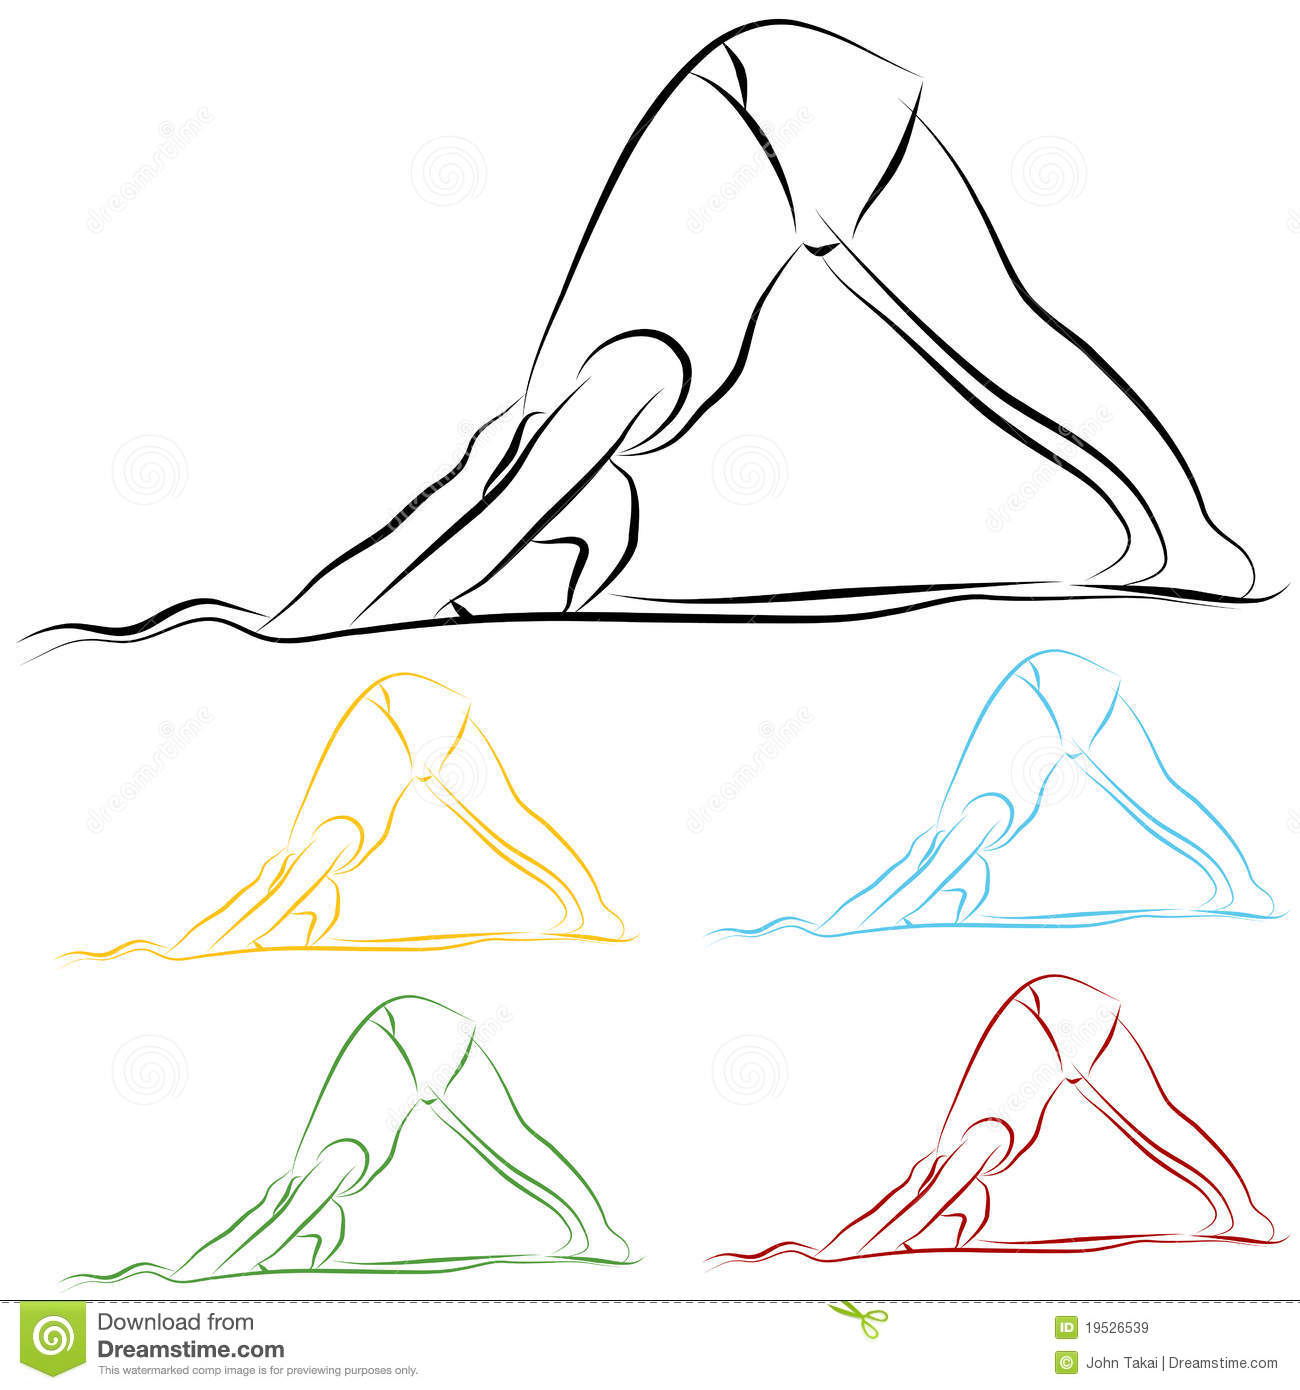 Line Art Yoga : Yoga stretch line drawing royalty free stock images